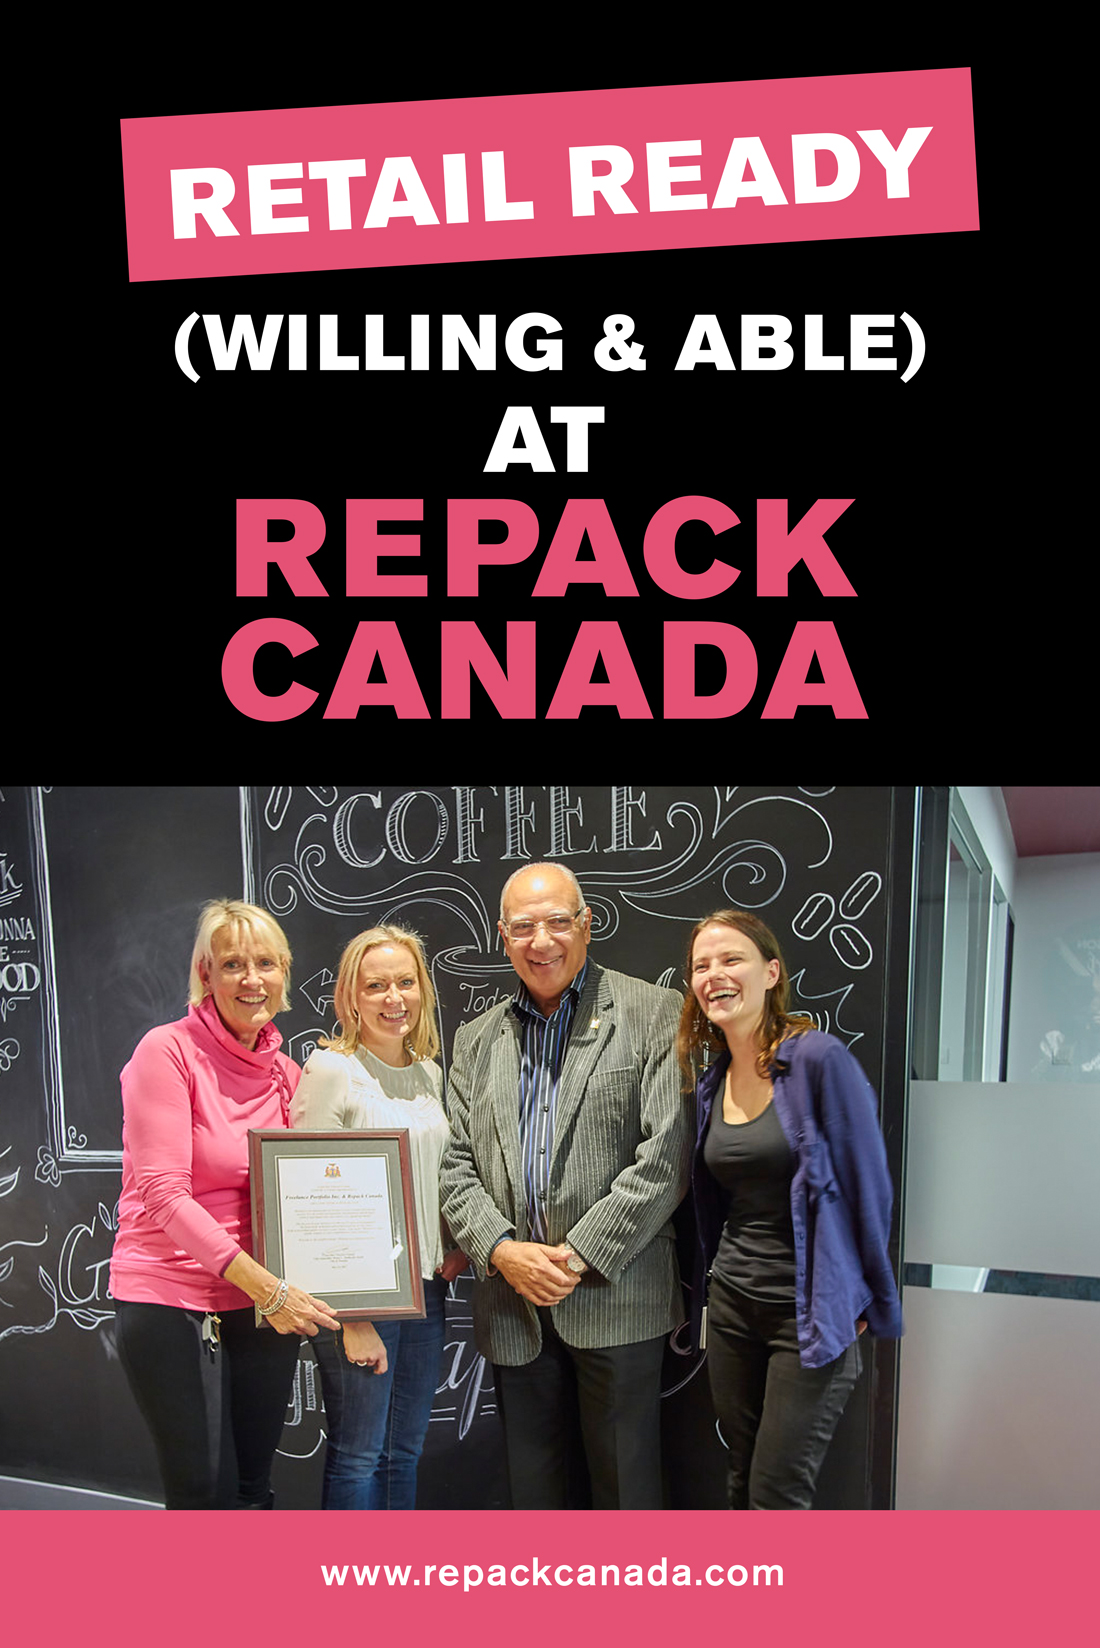 retail+ready+willing+and+able+at+RepackCanada